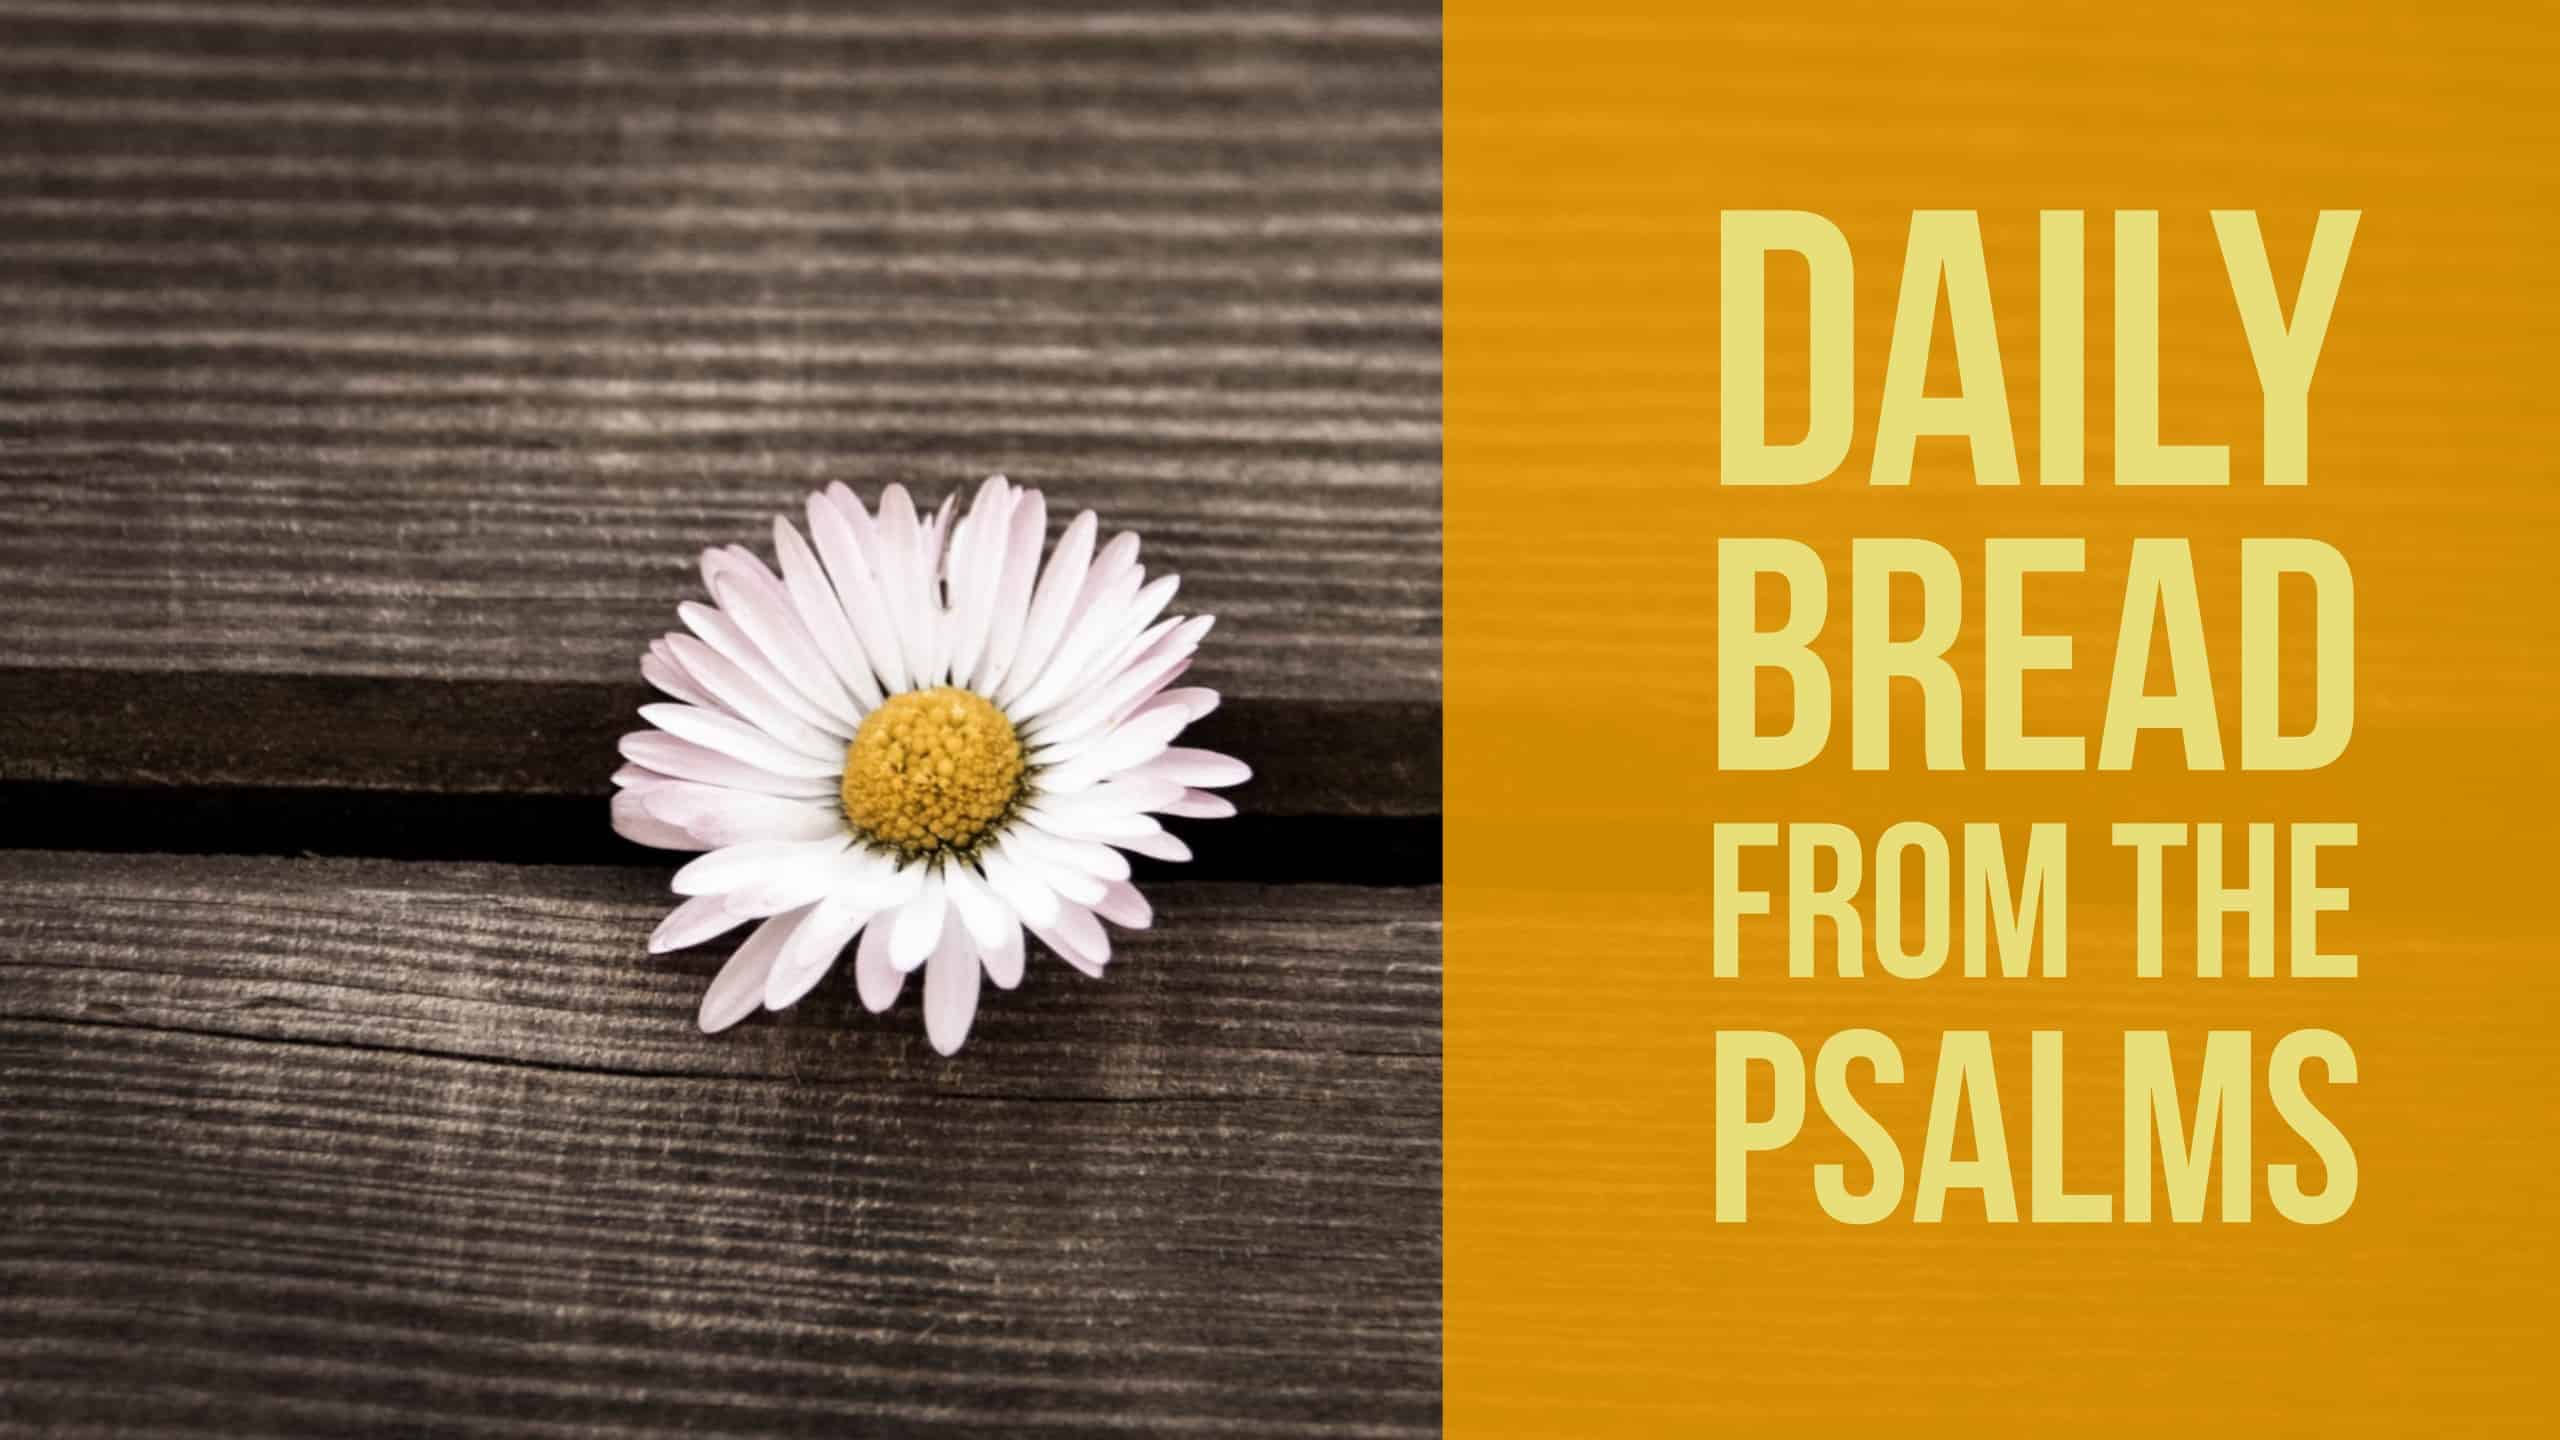 Daily Bread from the Psalms Psalm 1